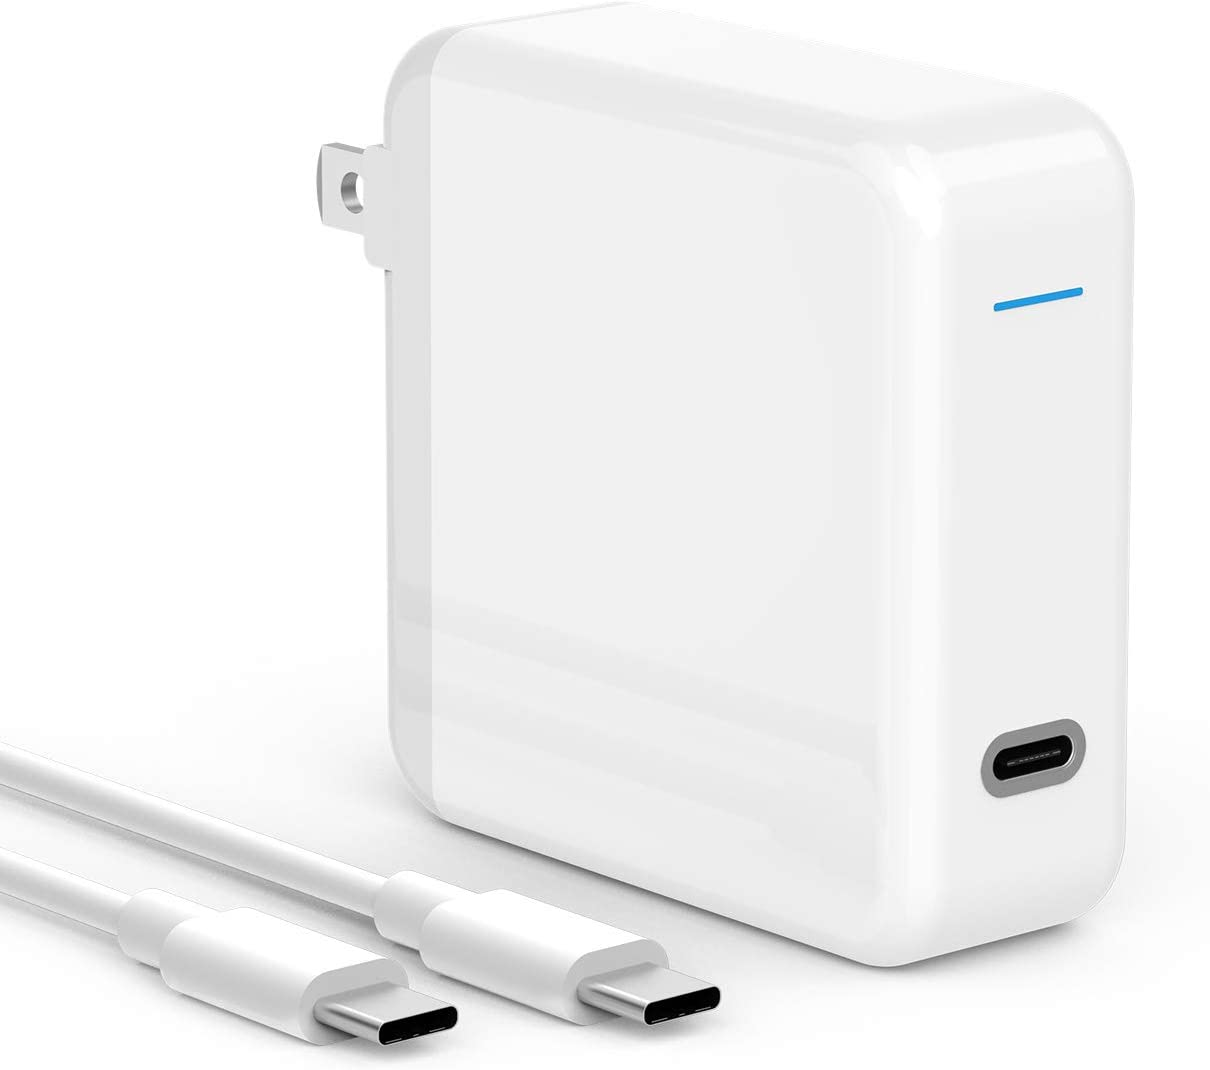 61W USB C Fast Charger Compatible with MacBook Pro 13/15 inch, Book 12 inch, New Air 13 inch, Thunderbolt 3 Type C Laptop Power Adapter Supply, LED, Foldable Plug, 6.6ft USB C to C Cord